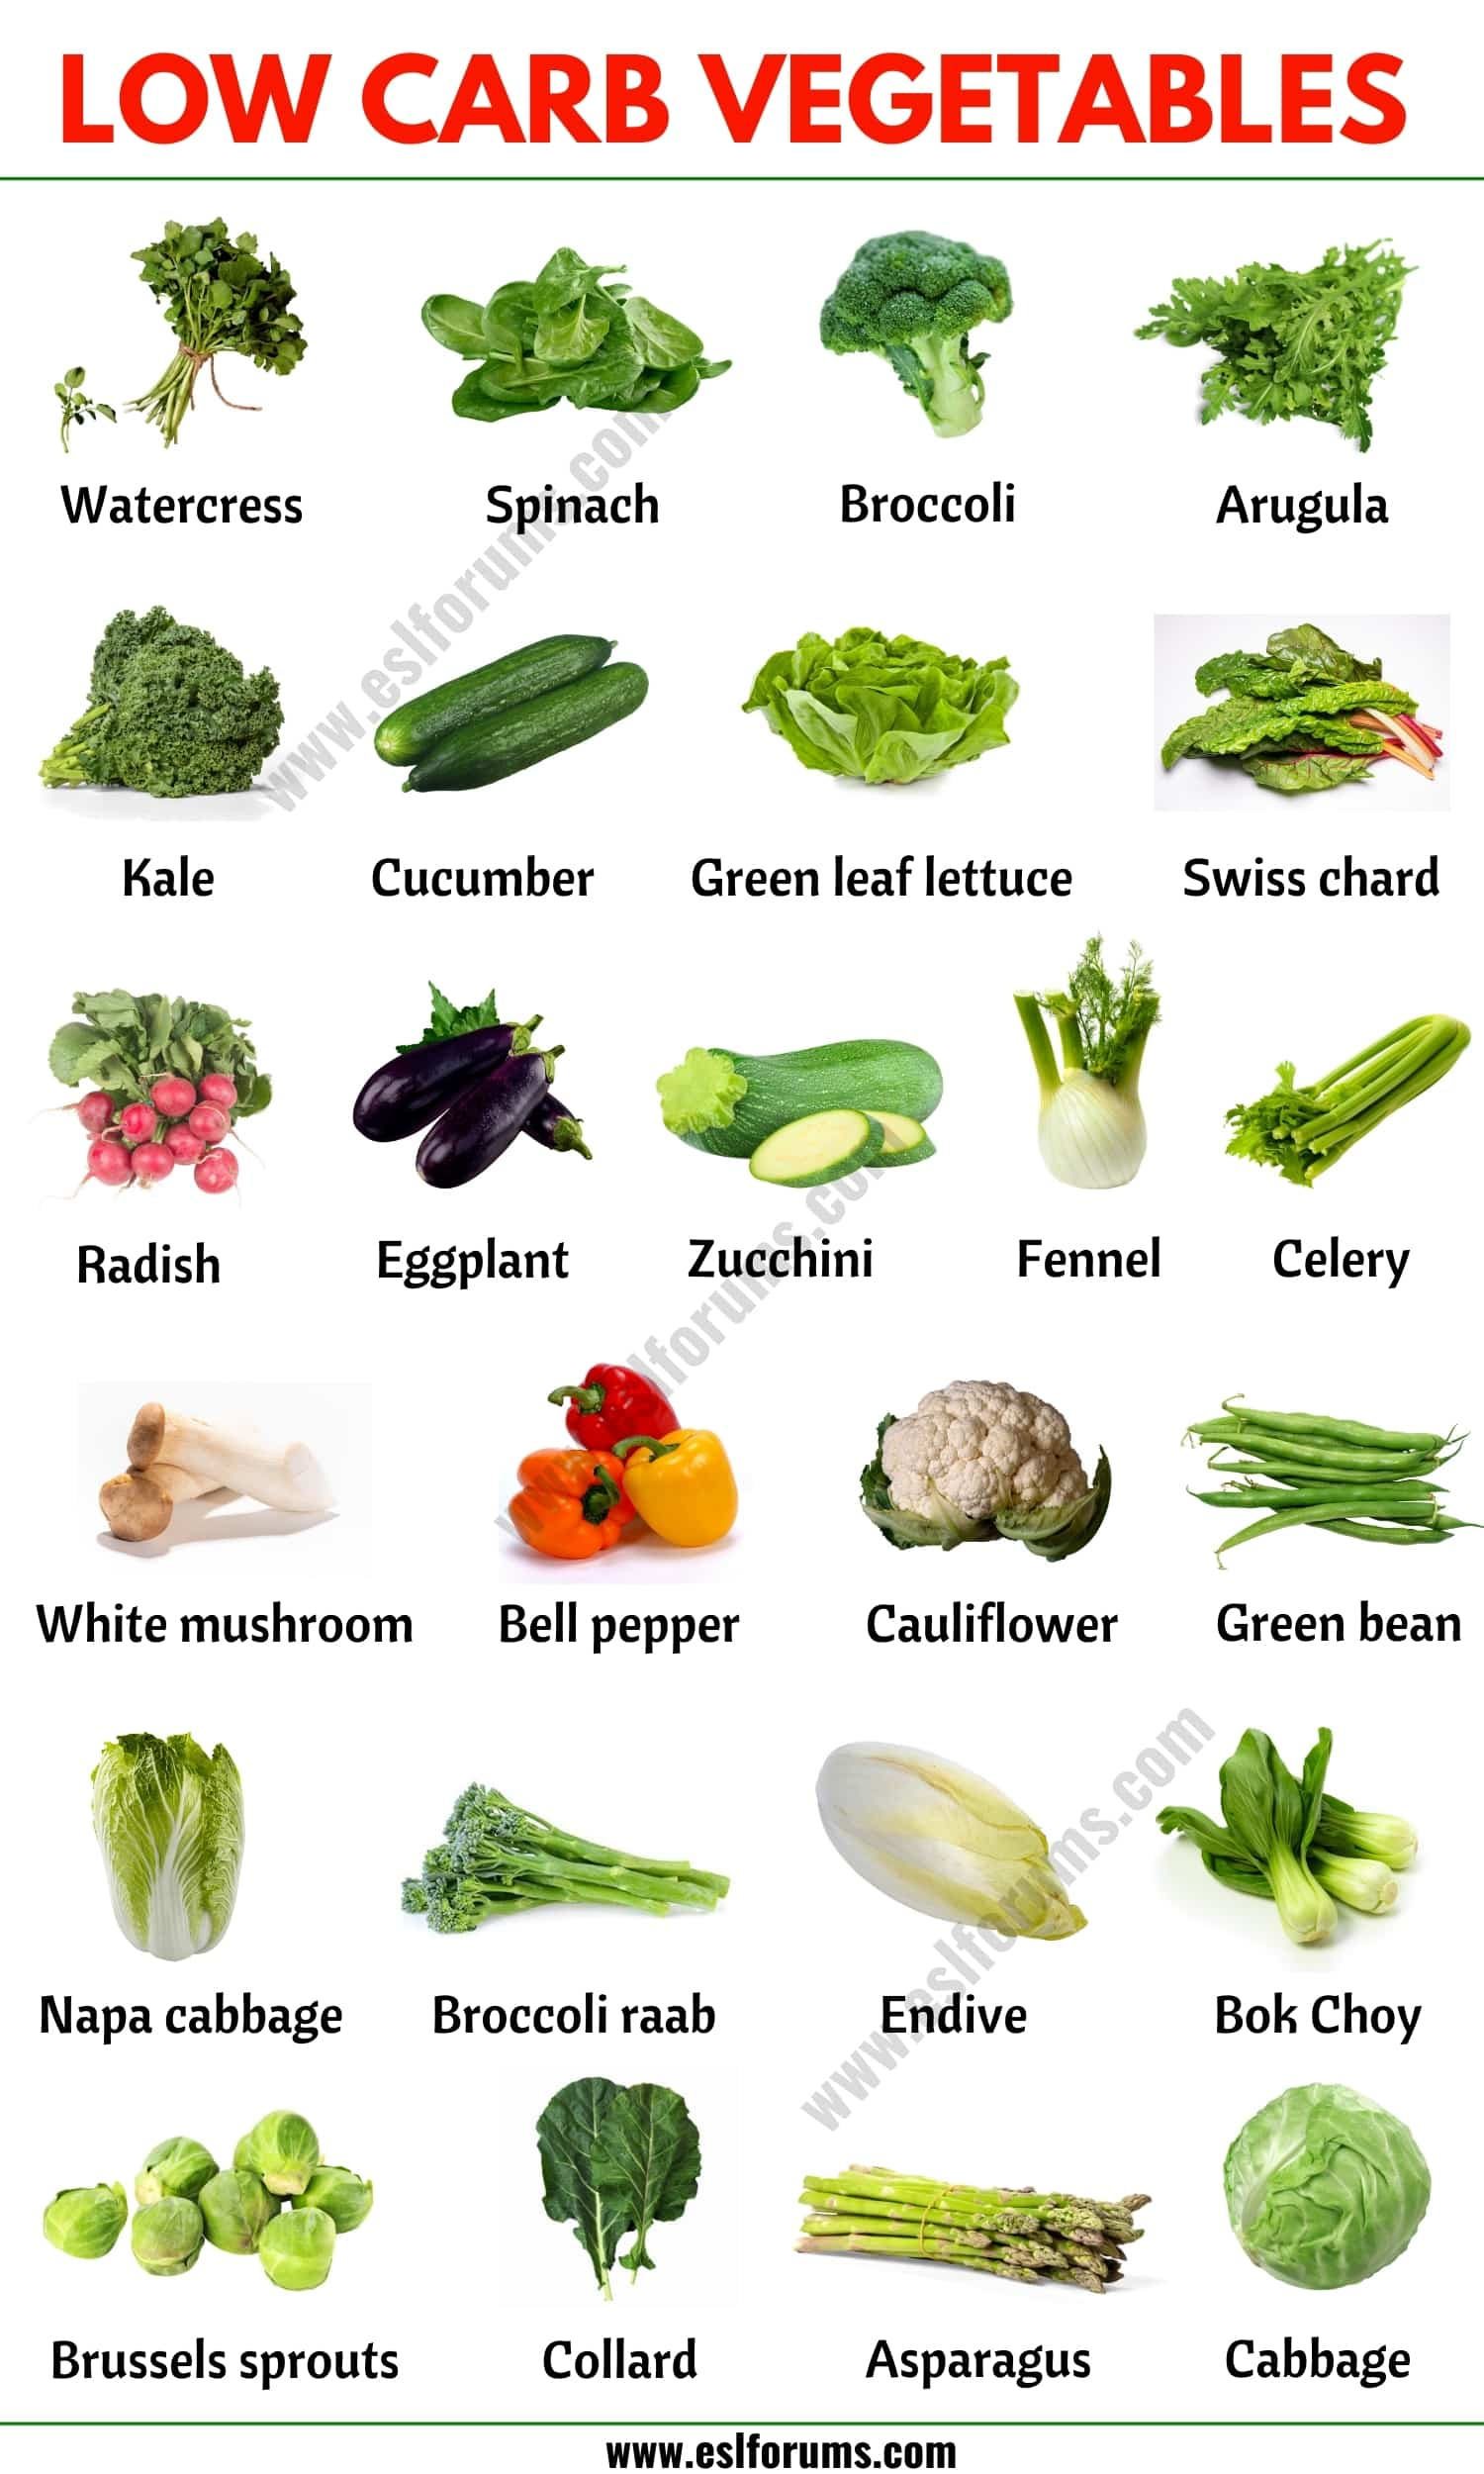 Low Carb Vegetables: A Guide to The Best Low-Carb Vegetables